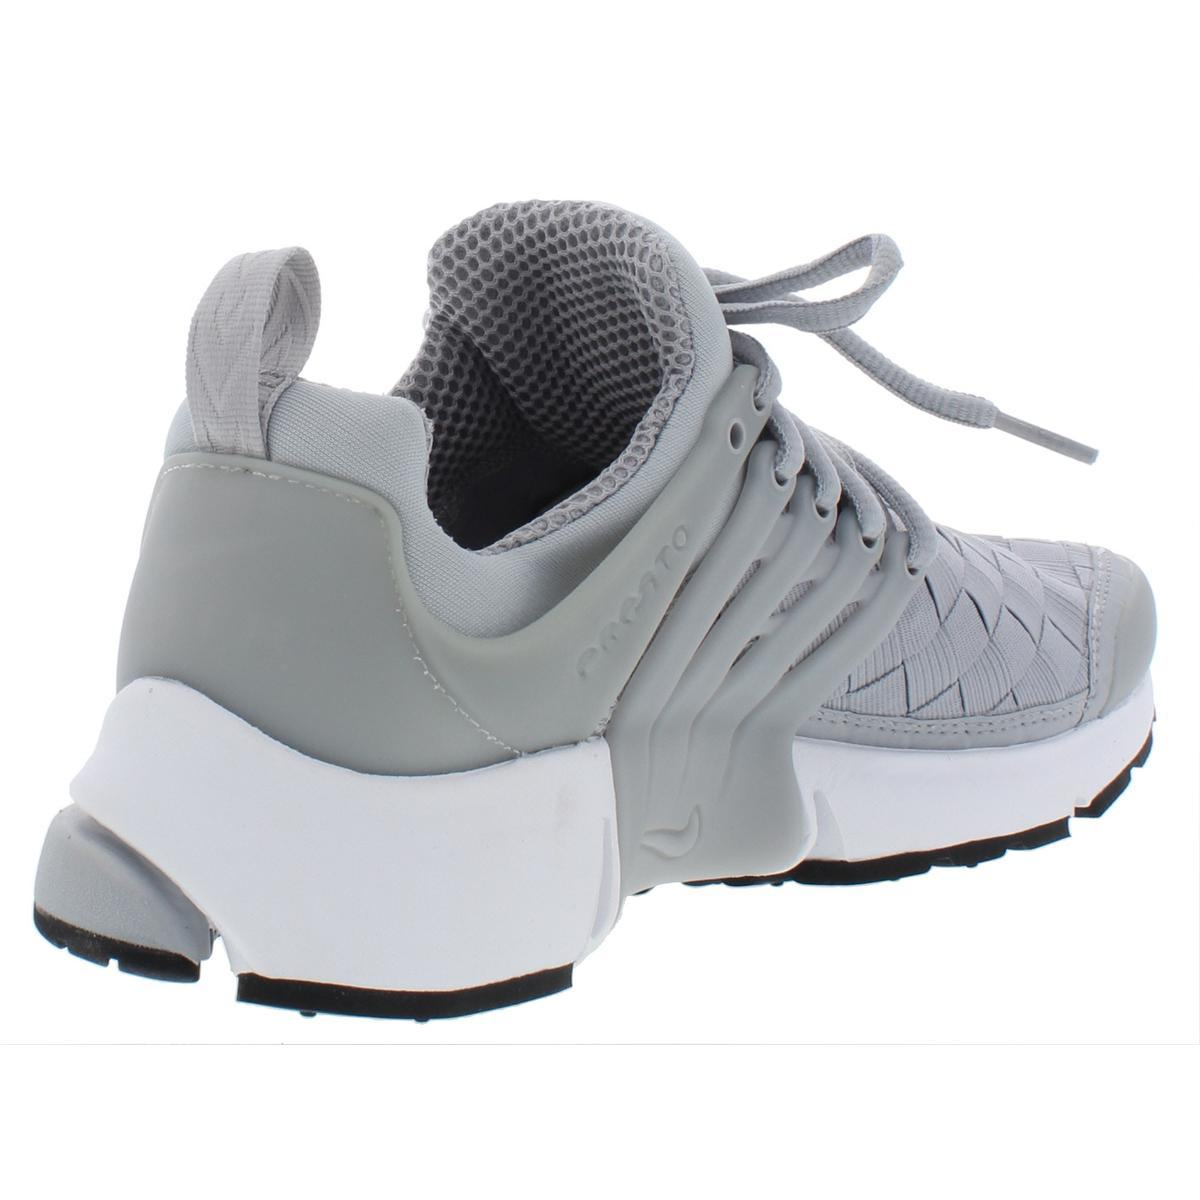 Nike-Mens-Nike-Air-Presto-Padded-Insole-Running-Shoes-Sneakers-BHFO-4205 thumbnail 4